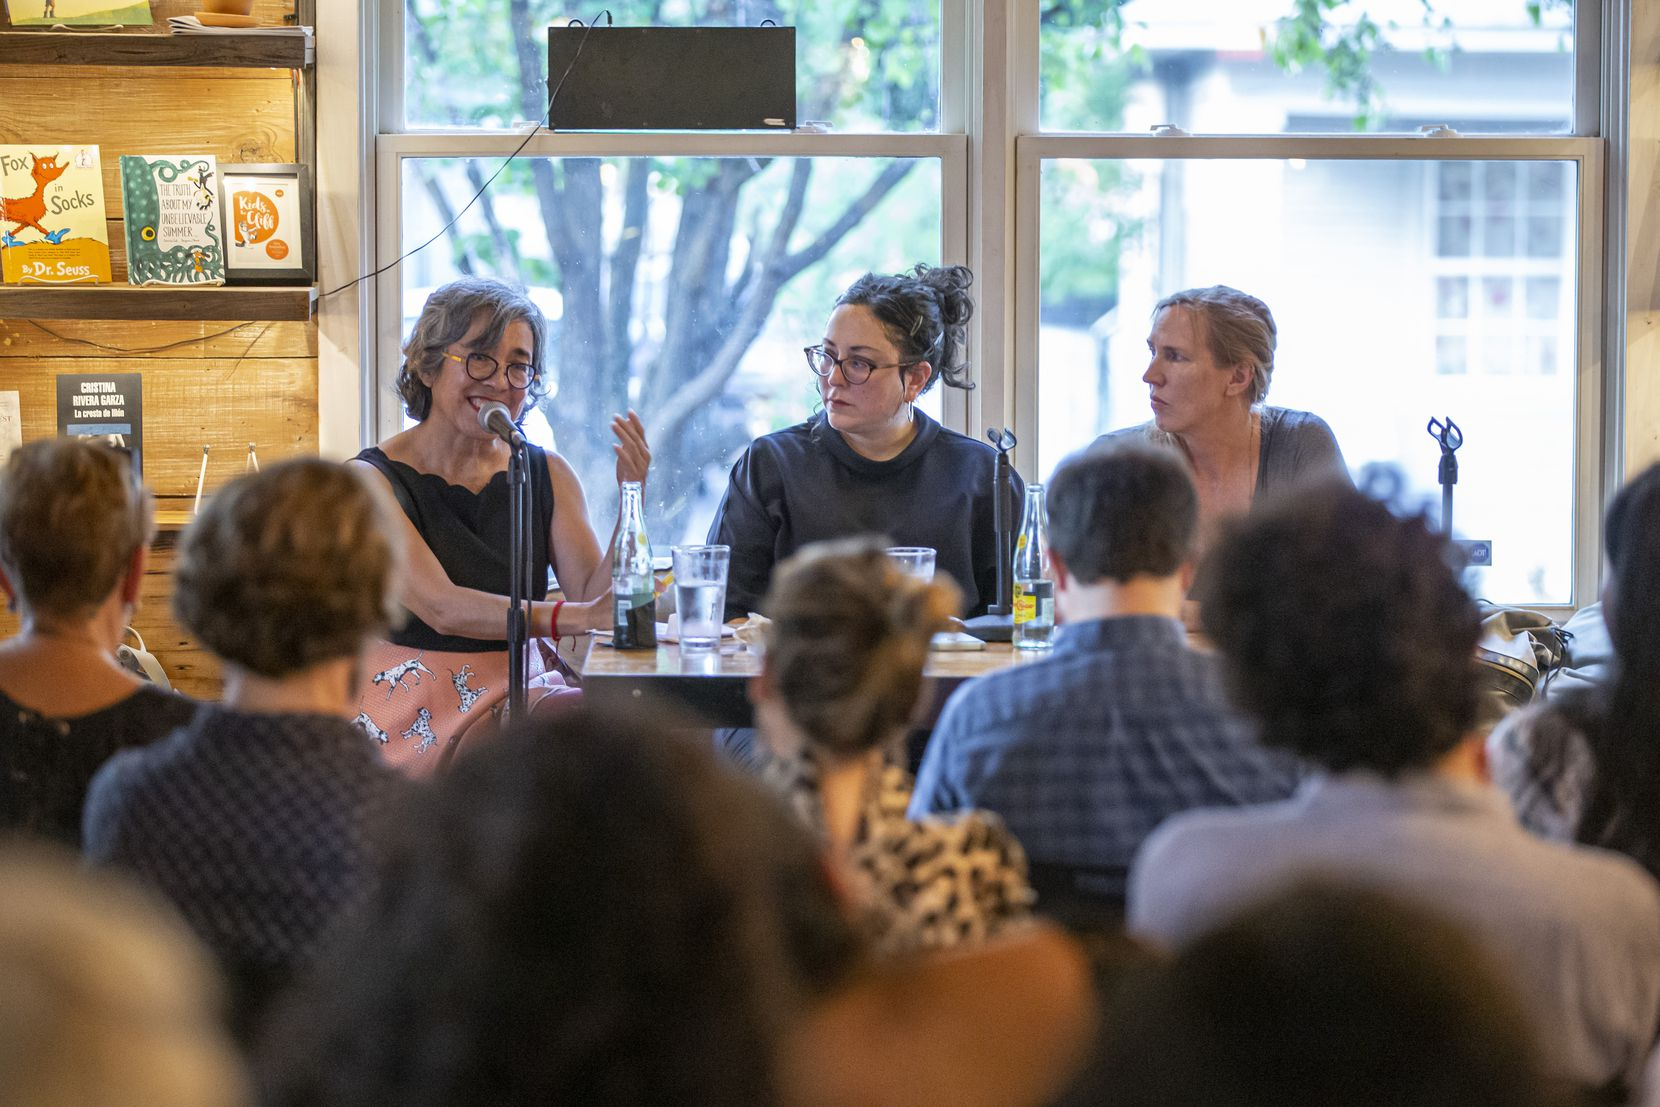 PEN America previously co-sponsored events in North Texas such as the Hay Forum at Dallas' Wild Detectives bookshop with authors Cristina Rivera Garza (left), Leni Zumas (center) and Miriam Toews.